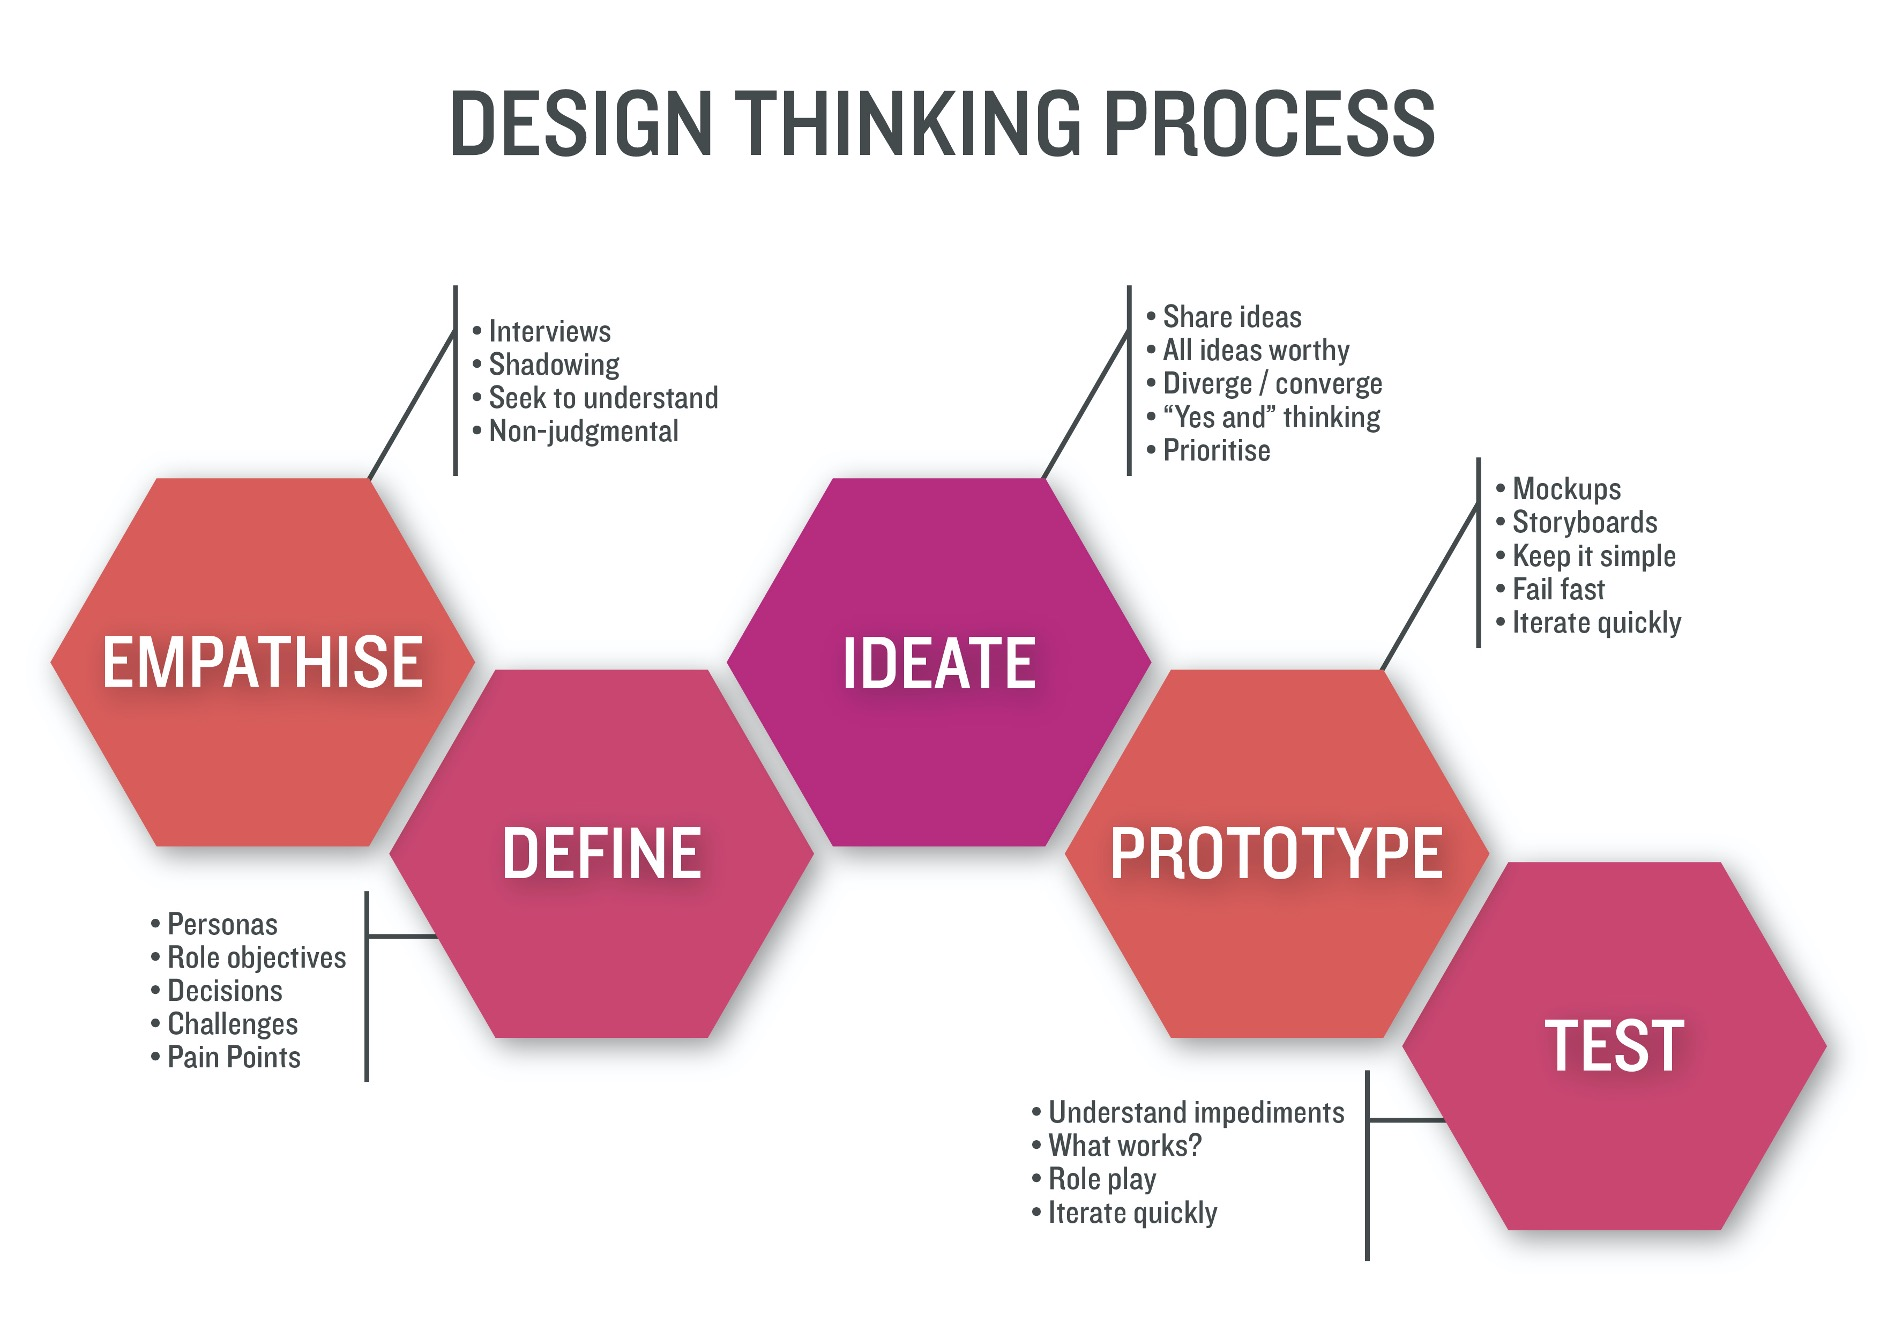 How to use Design Thinking in marketing